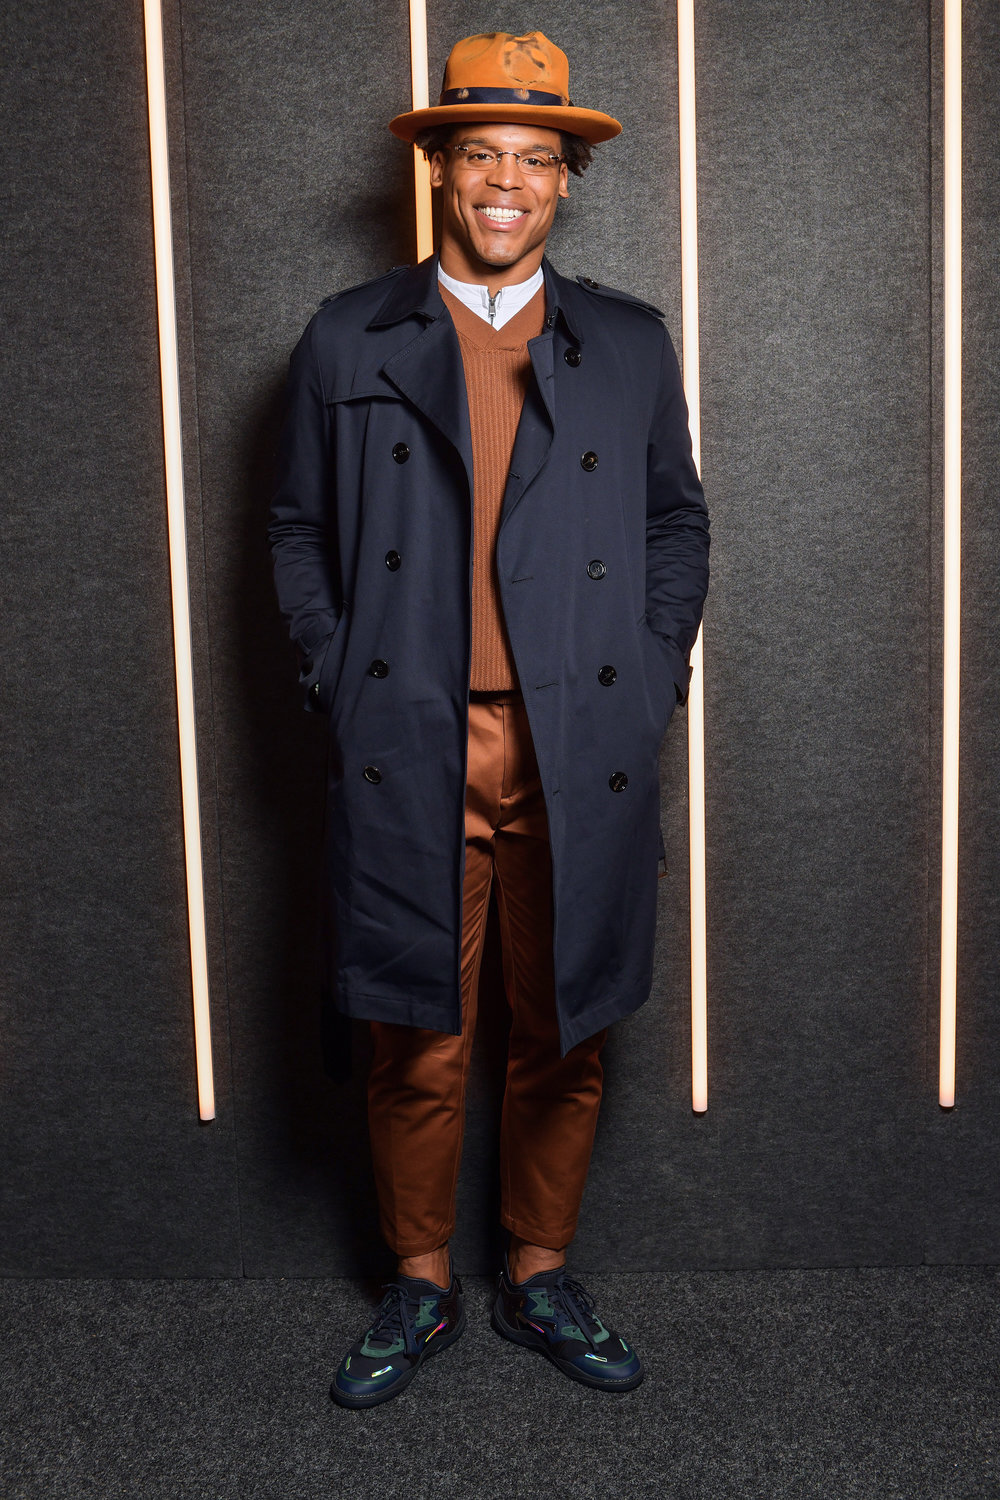 Cameron Newton backstage at the BOSS Fall/Winter 2019 show at Basketball City during New York Fashion Week on Wednesday, February 13, in New York City. Photography, Courtesy of BOSS.